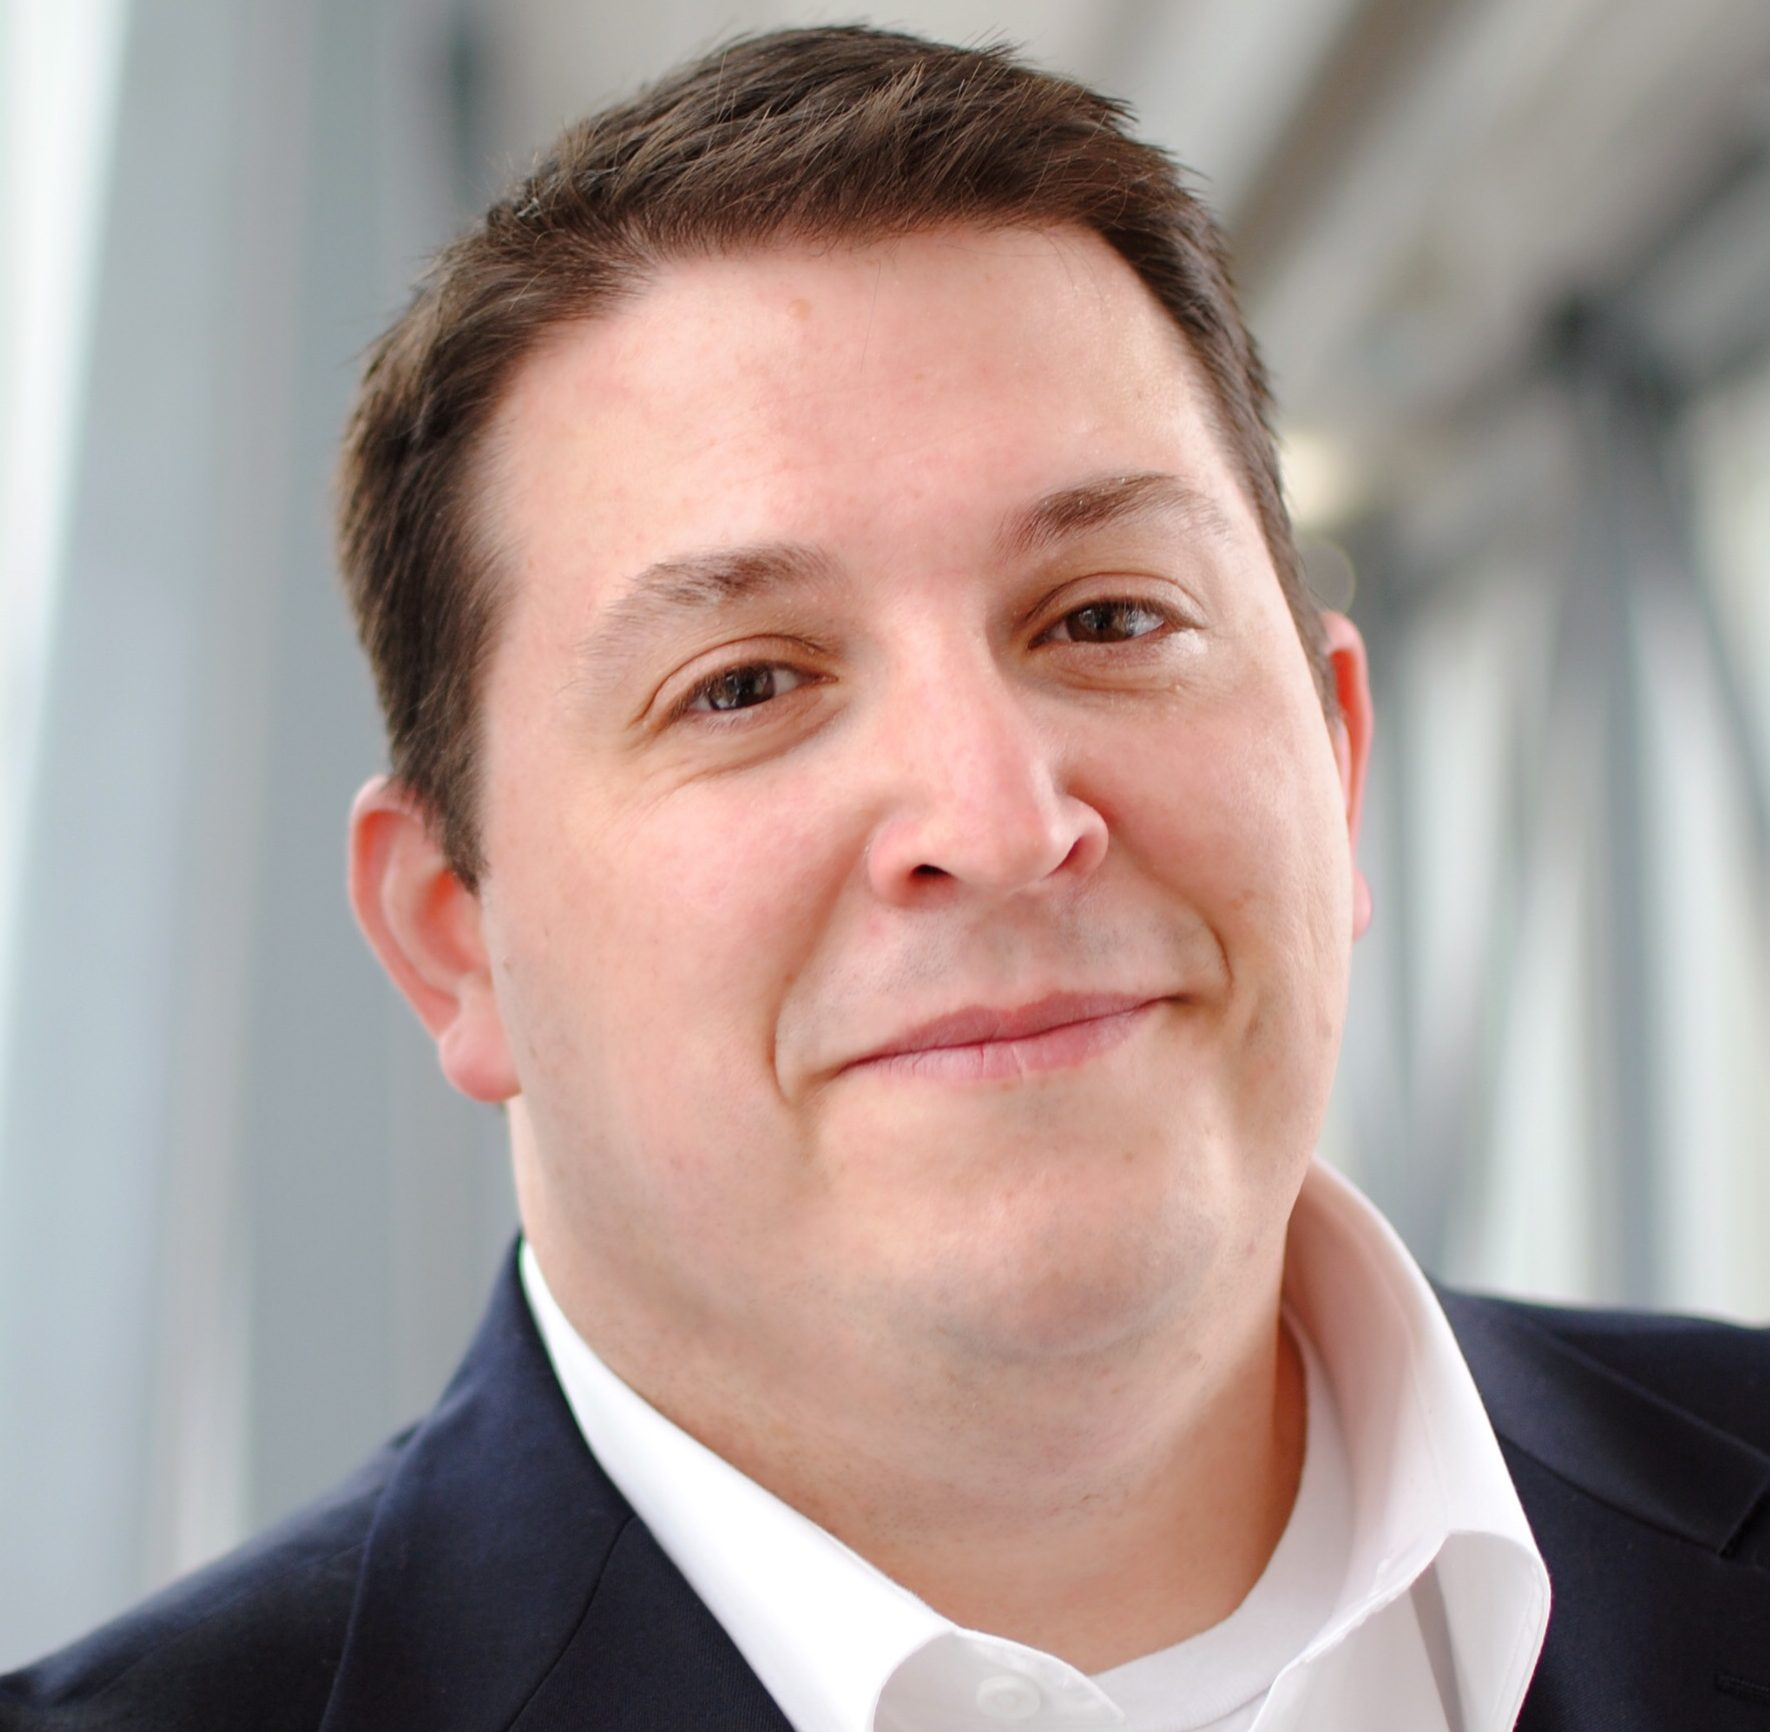 KYLE BOWEN is director of innovation for Teaching and Learning with Technology at Penn State University.